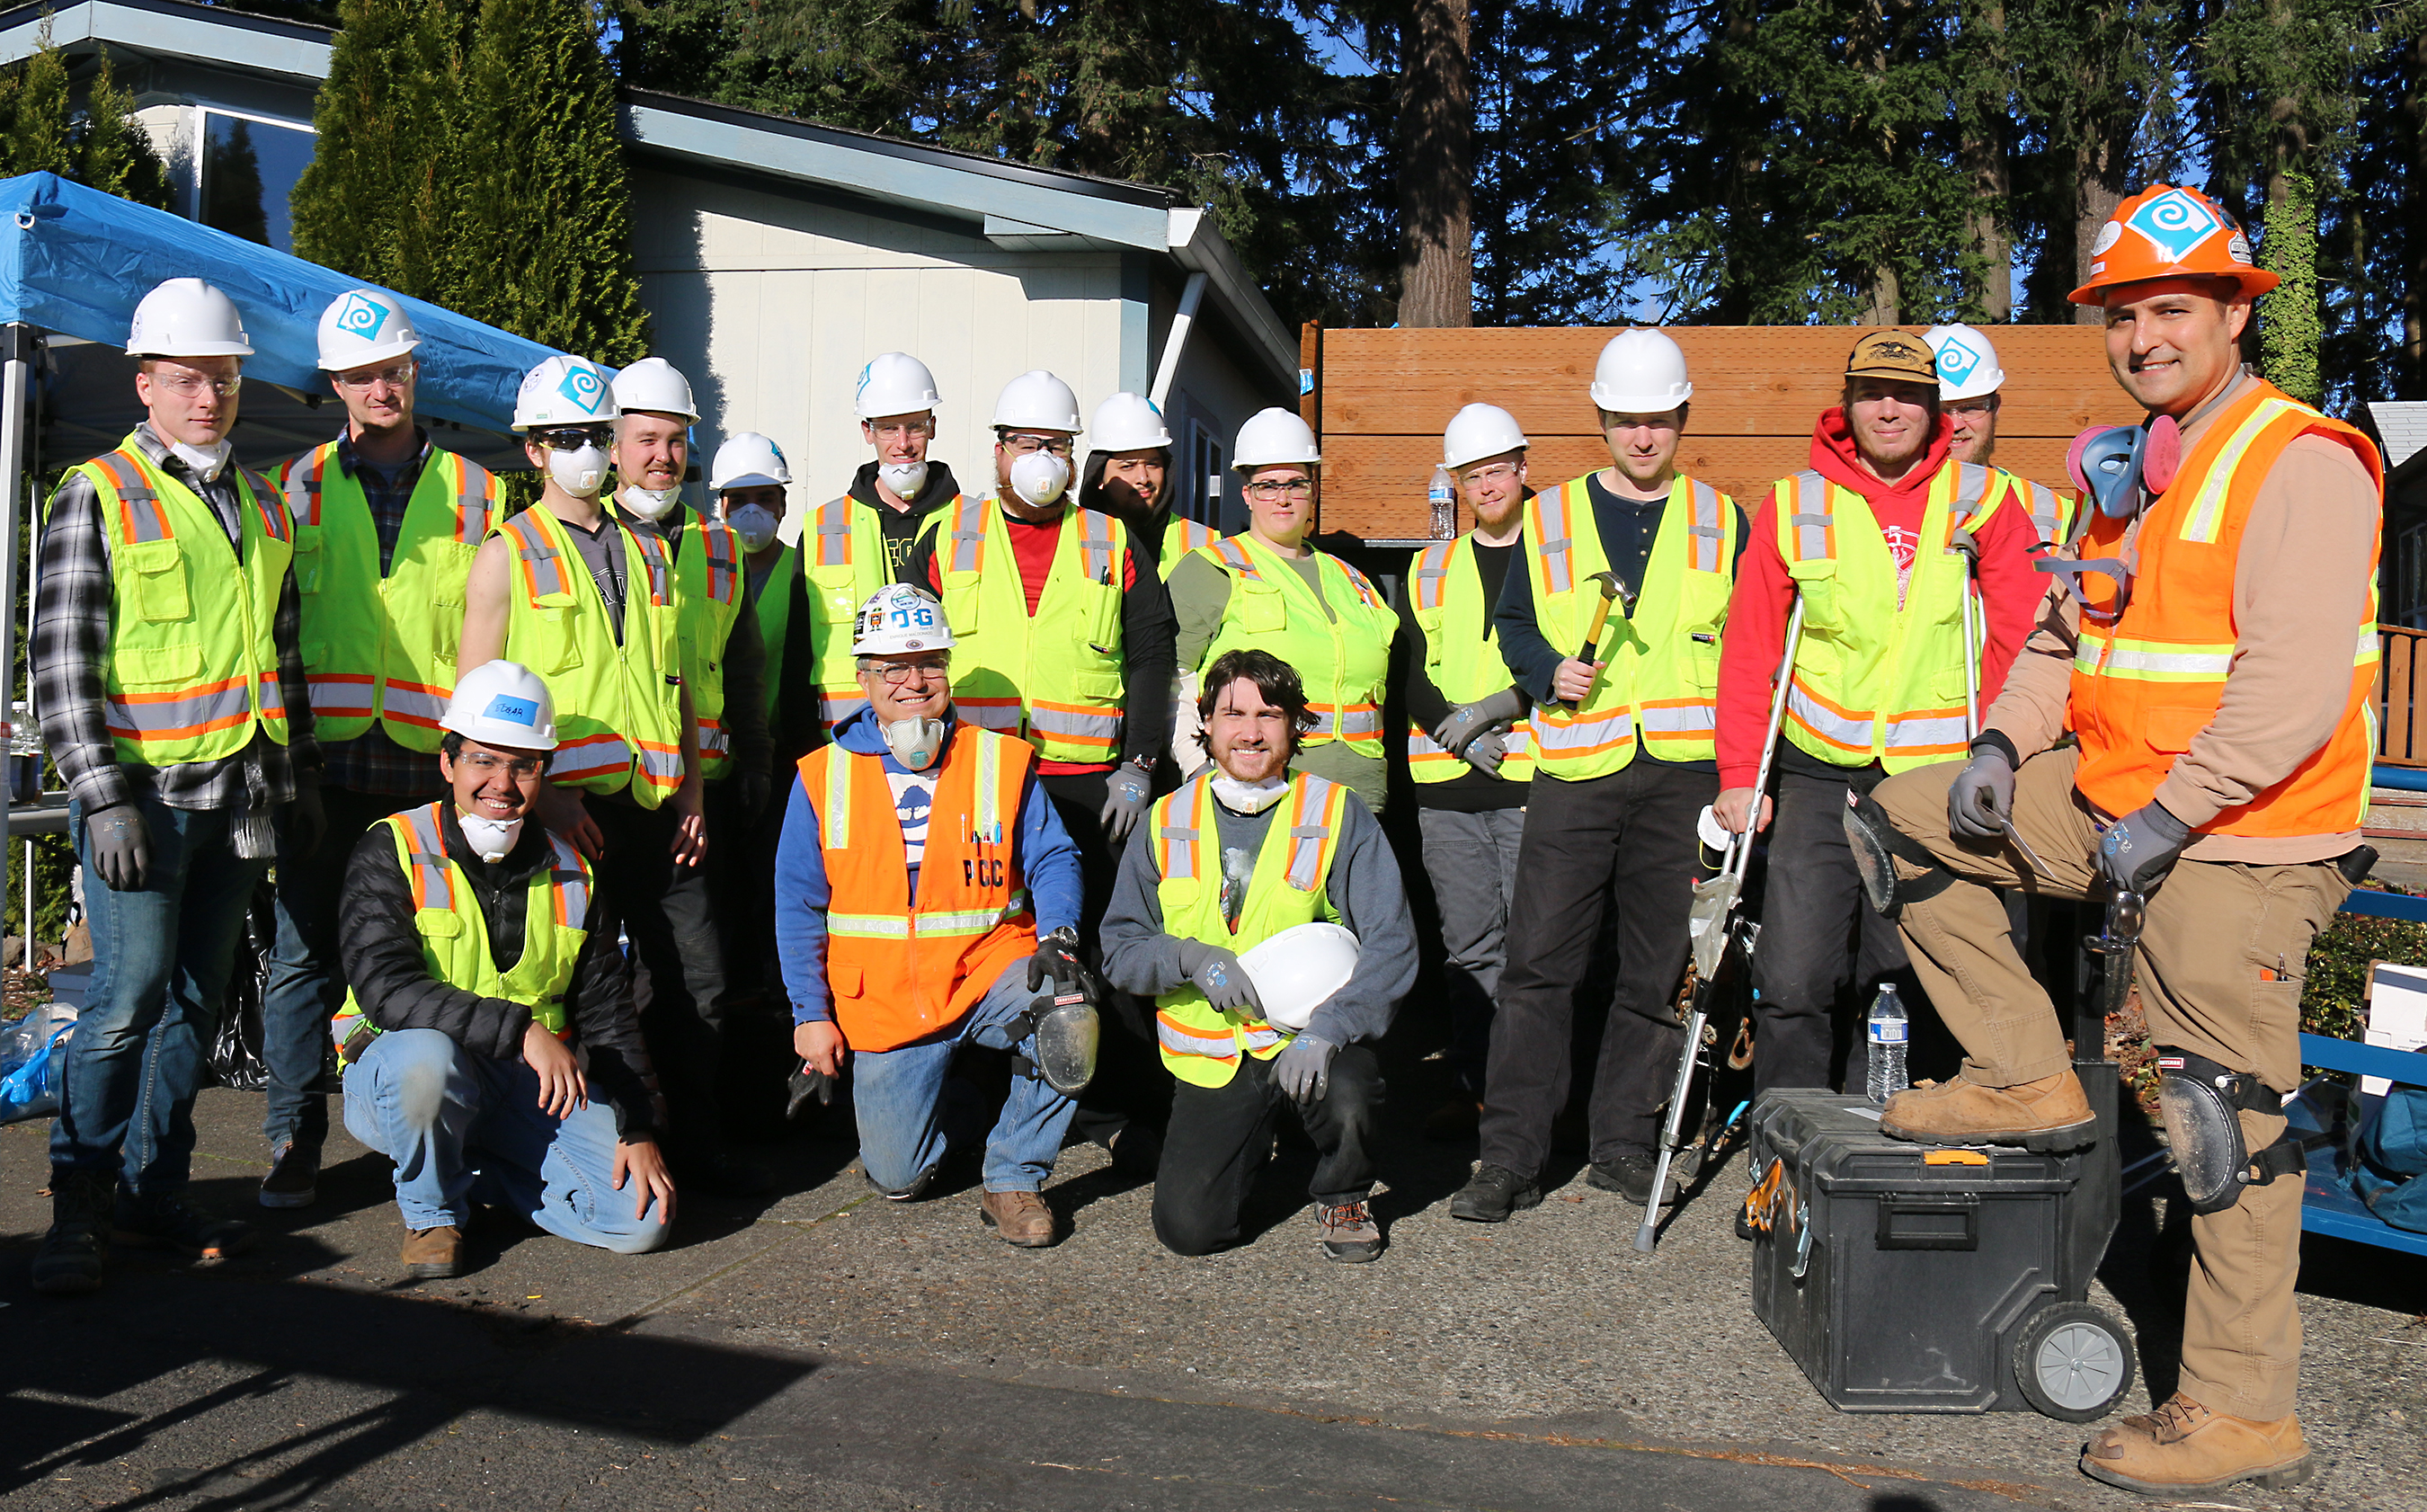 Trades class group photo in hardhats and vests